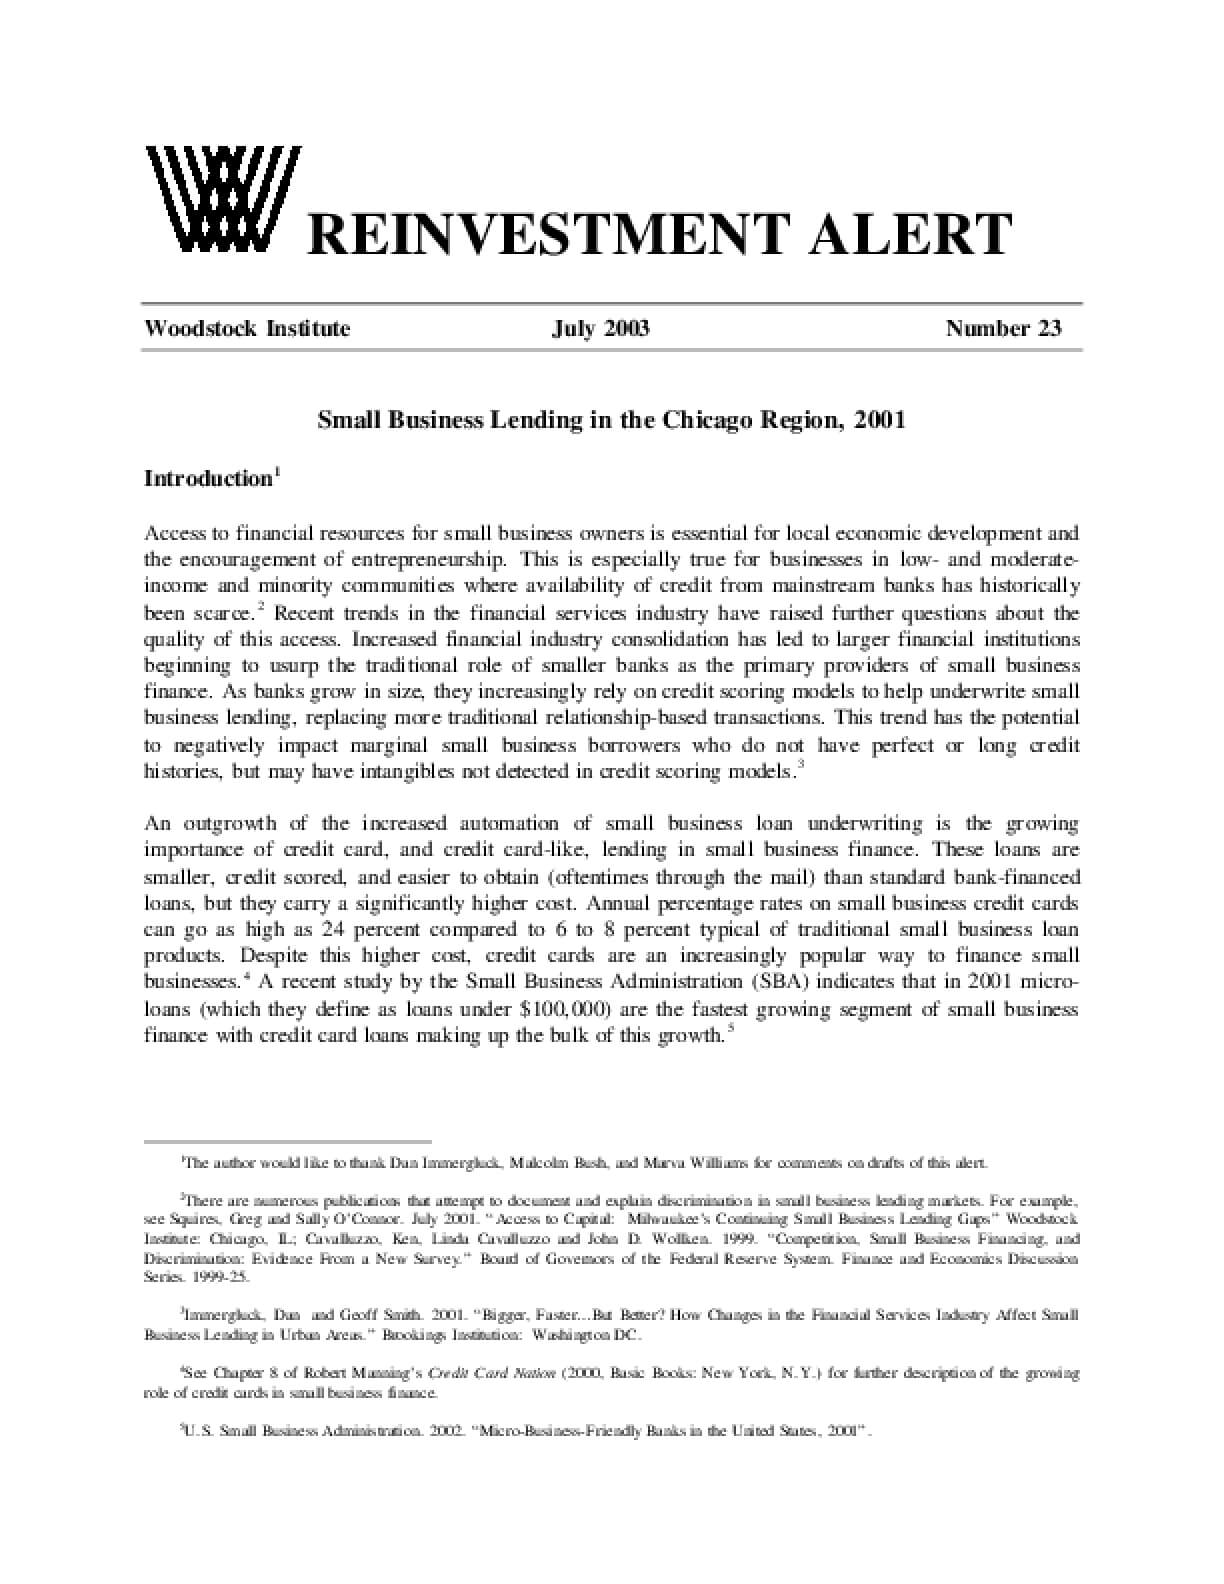 Reinvestment Alert 23:  Small Business Lending in the Chicago Region